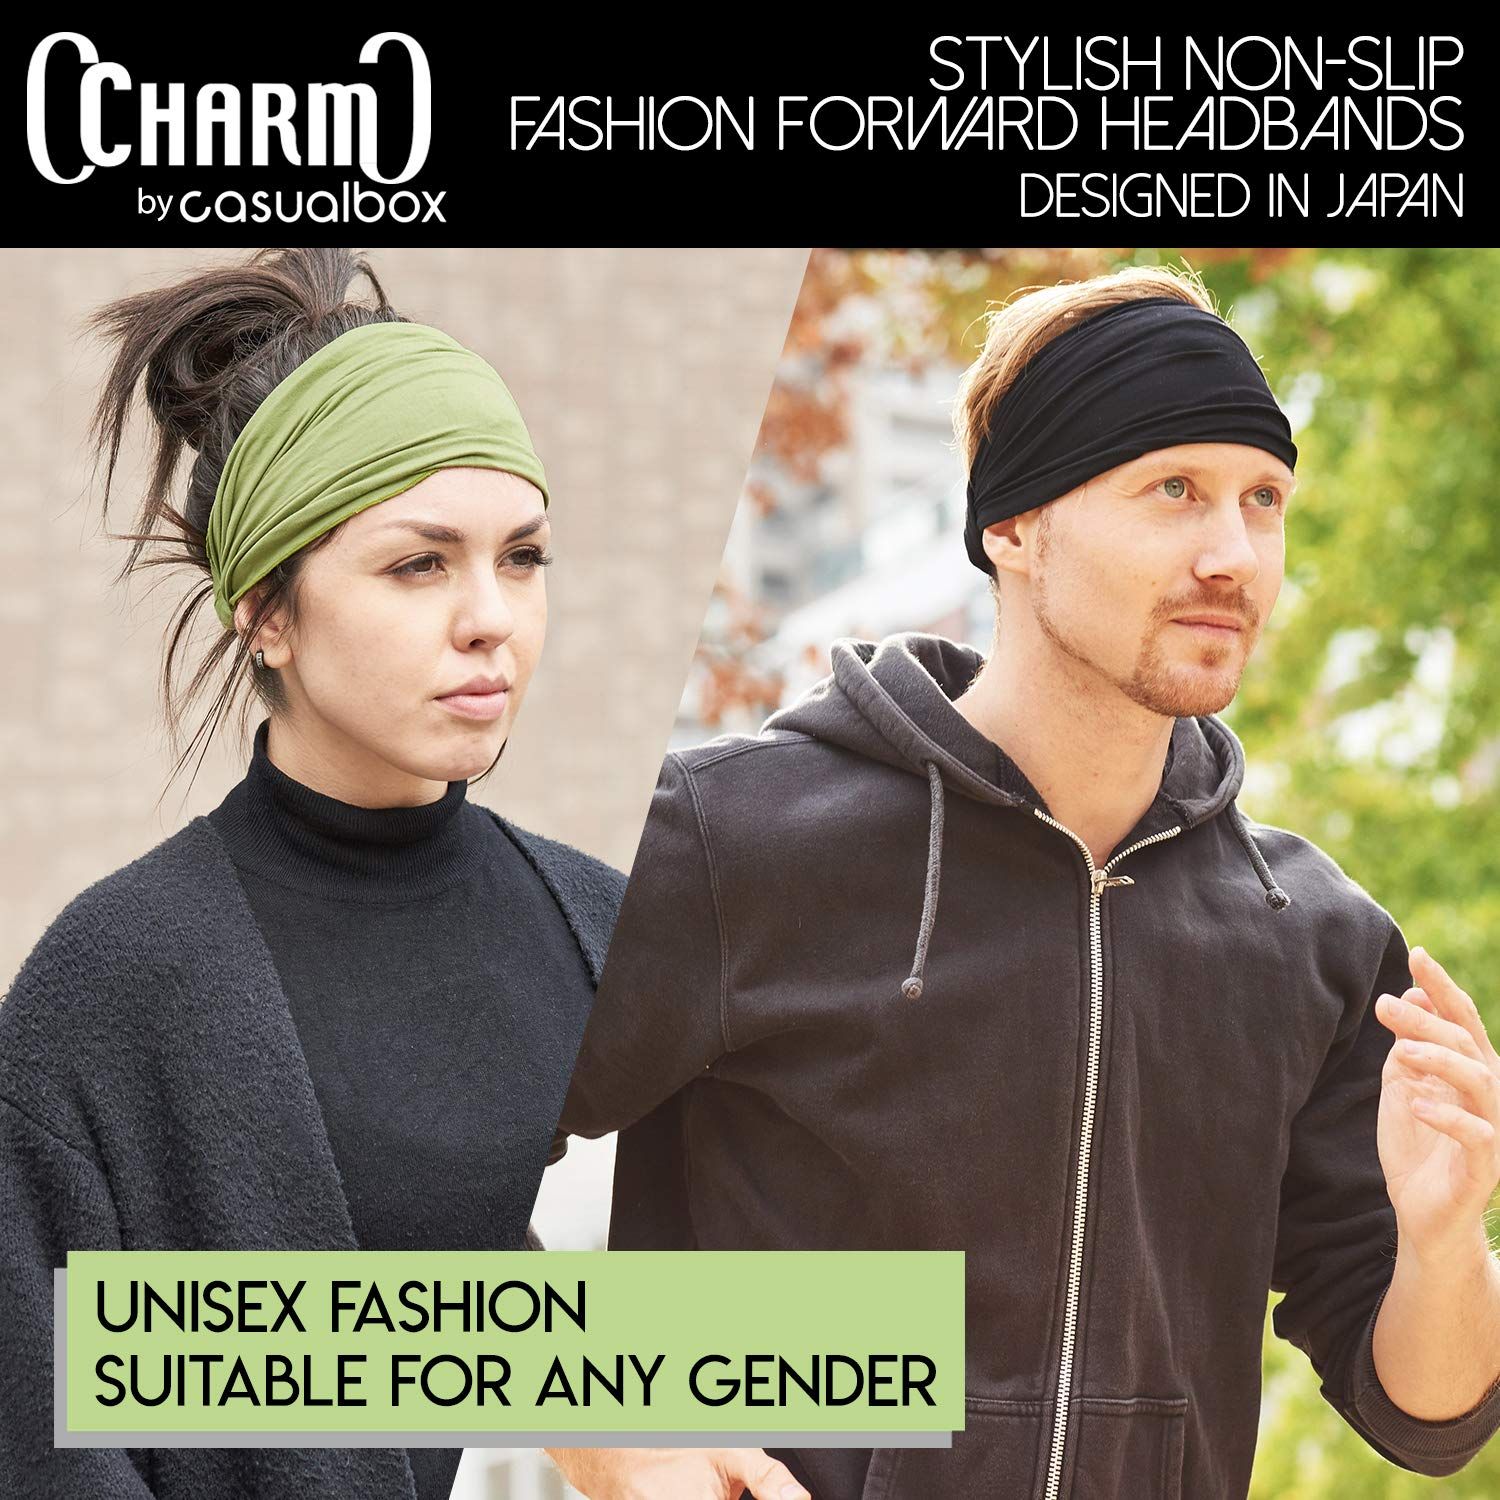 CHARM Black & Navy 2-Pack Japanese Bandana Headbands for Men and Women – Comfortable Head Bands with Elastic Secure Snug Fit Ideal Runners Fitness Sports Football Tennis Stylish Lightweight M by CCHARM (Image #4)